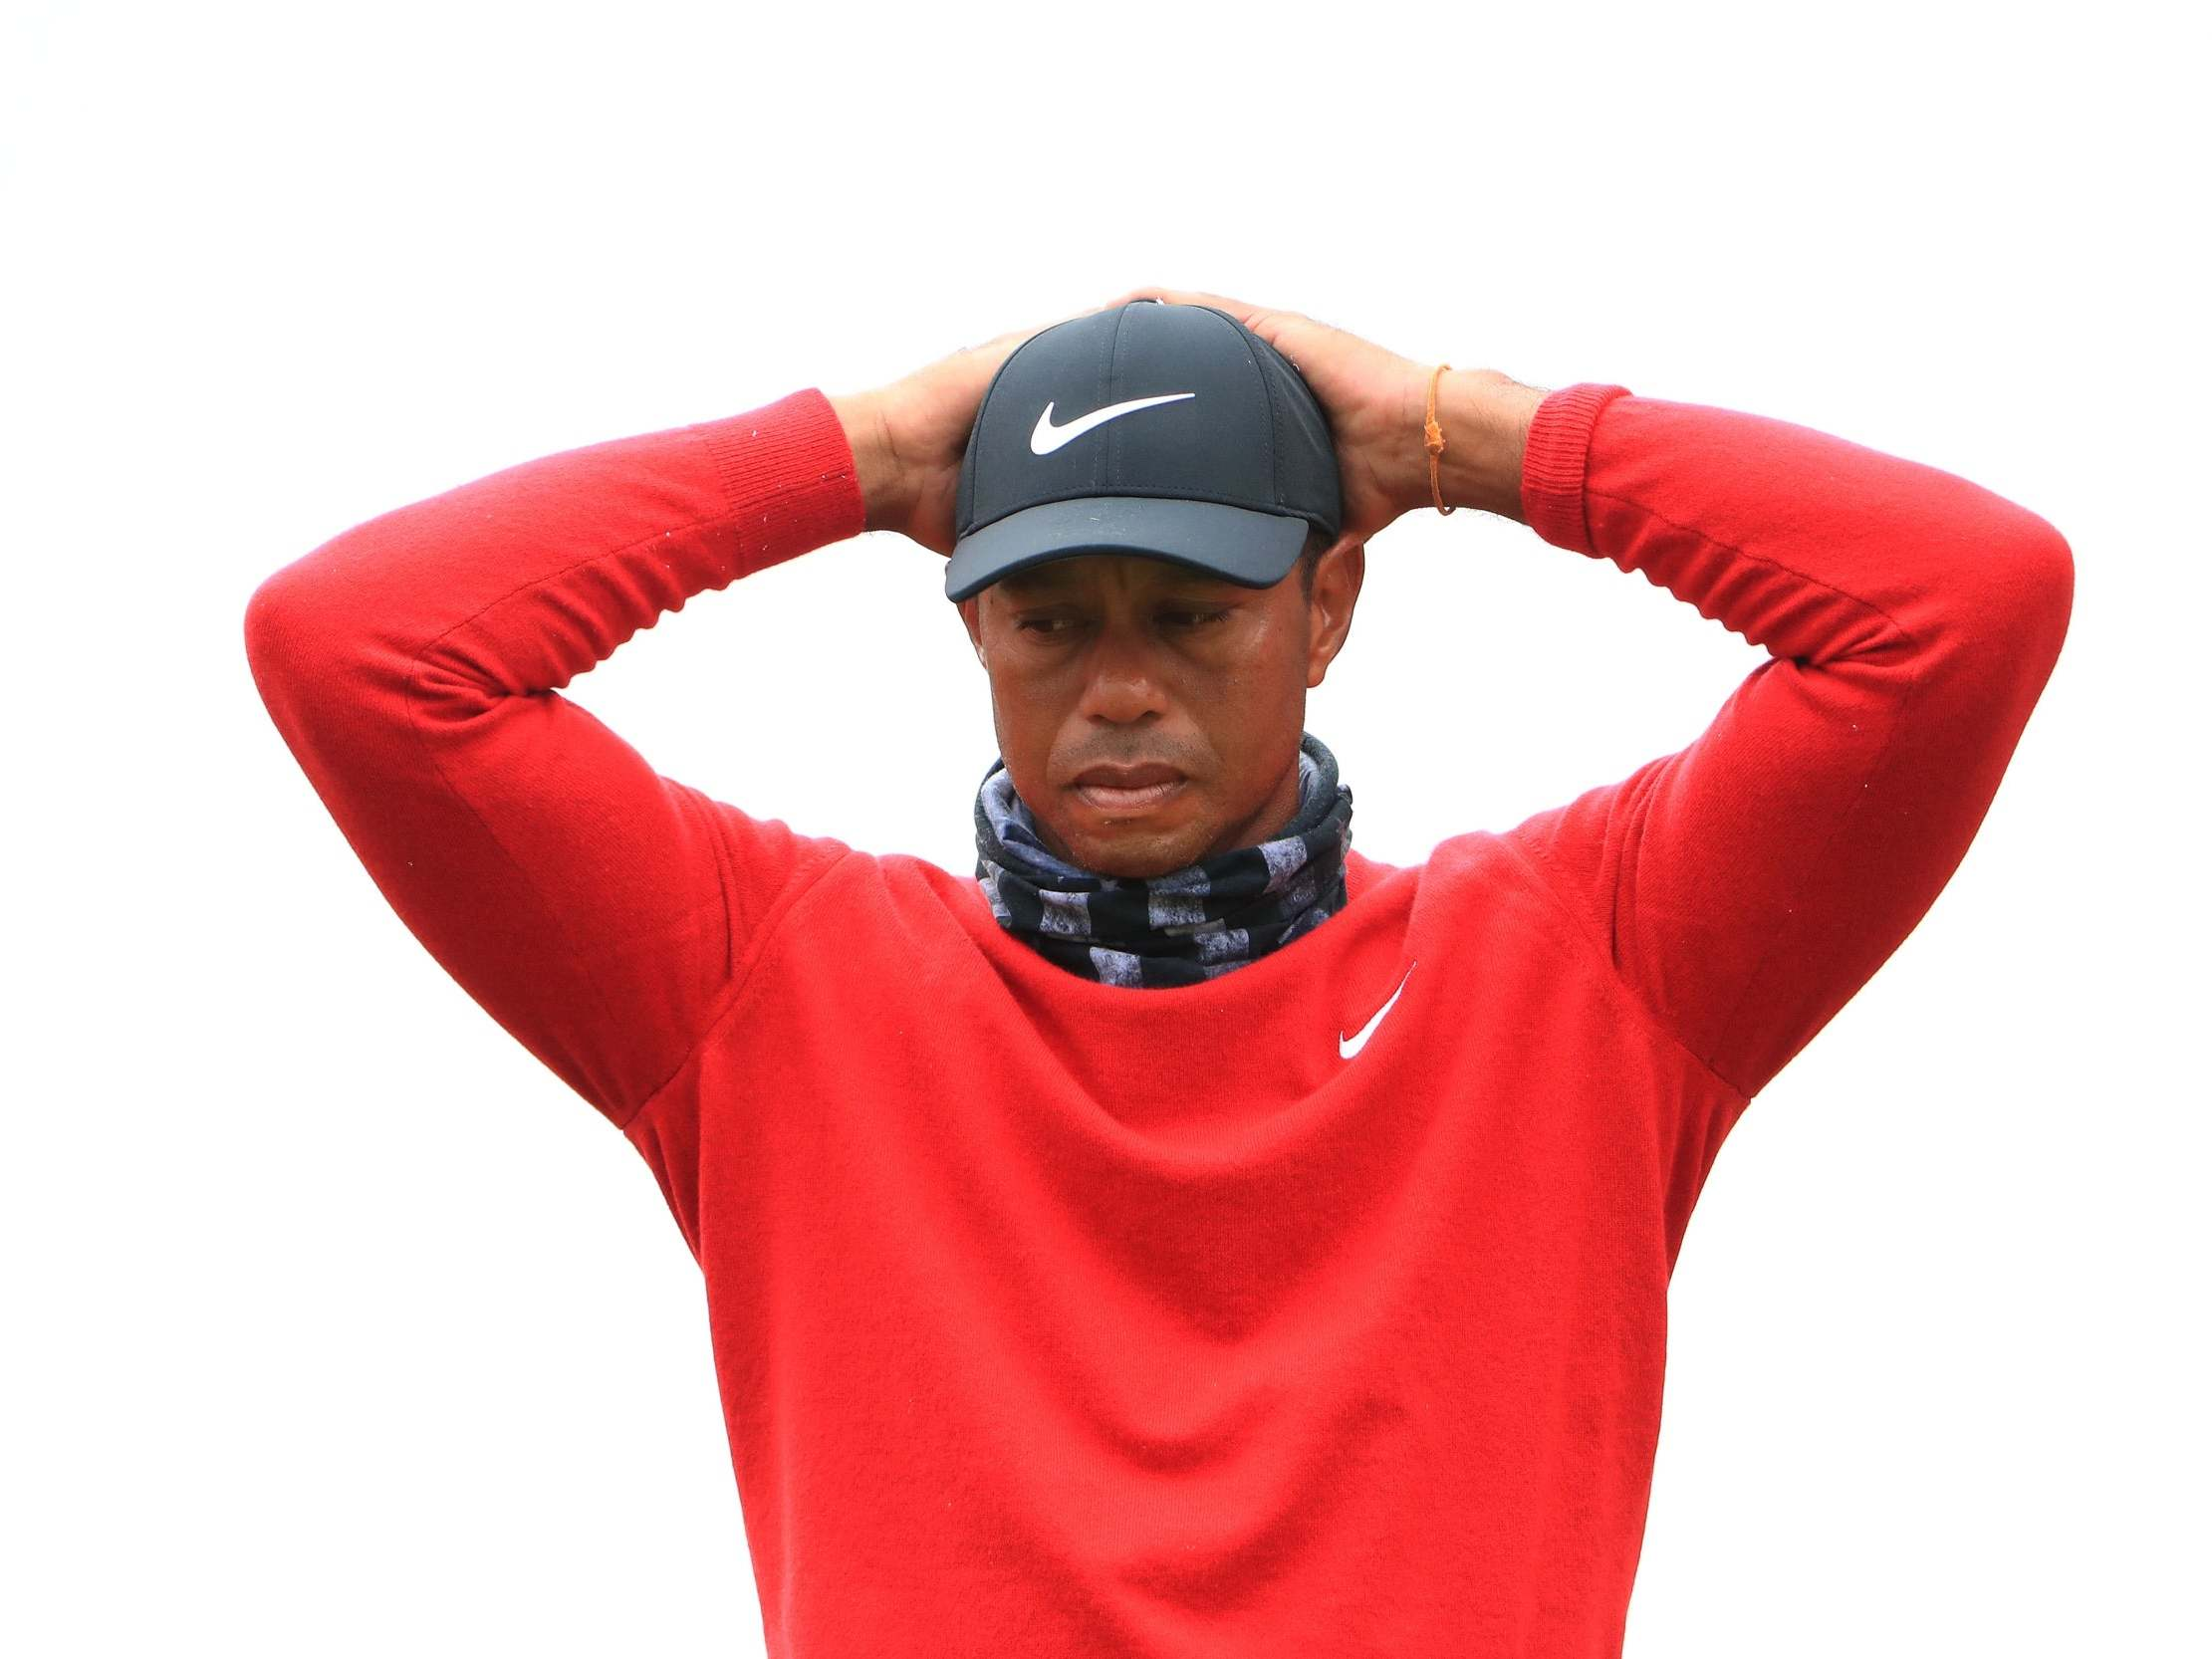 Tiger Woods 'feeling competitive' after strong finish at PGA Championship